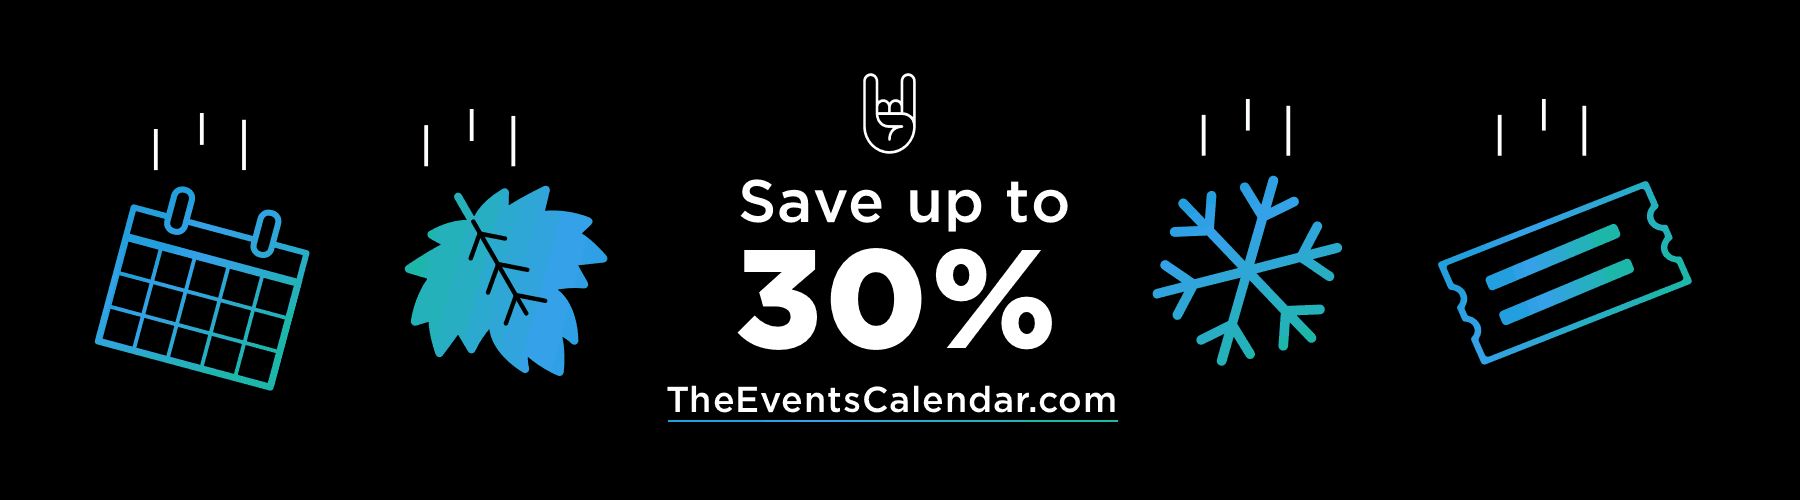 The Events Calendar - 30% Off Black Friday